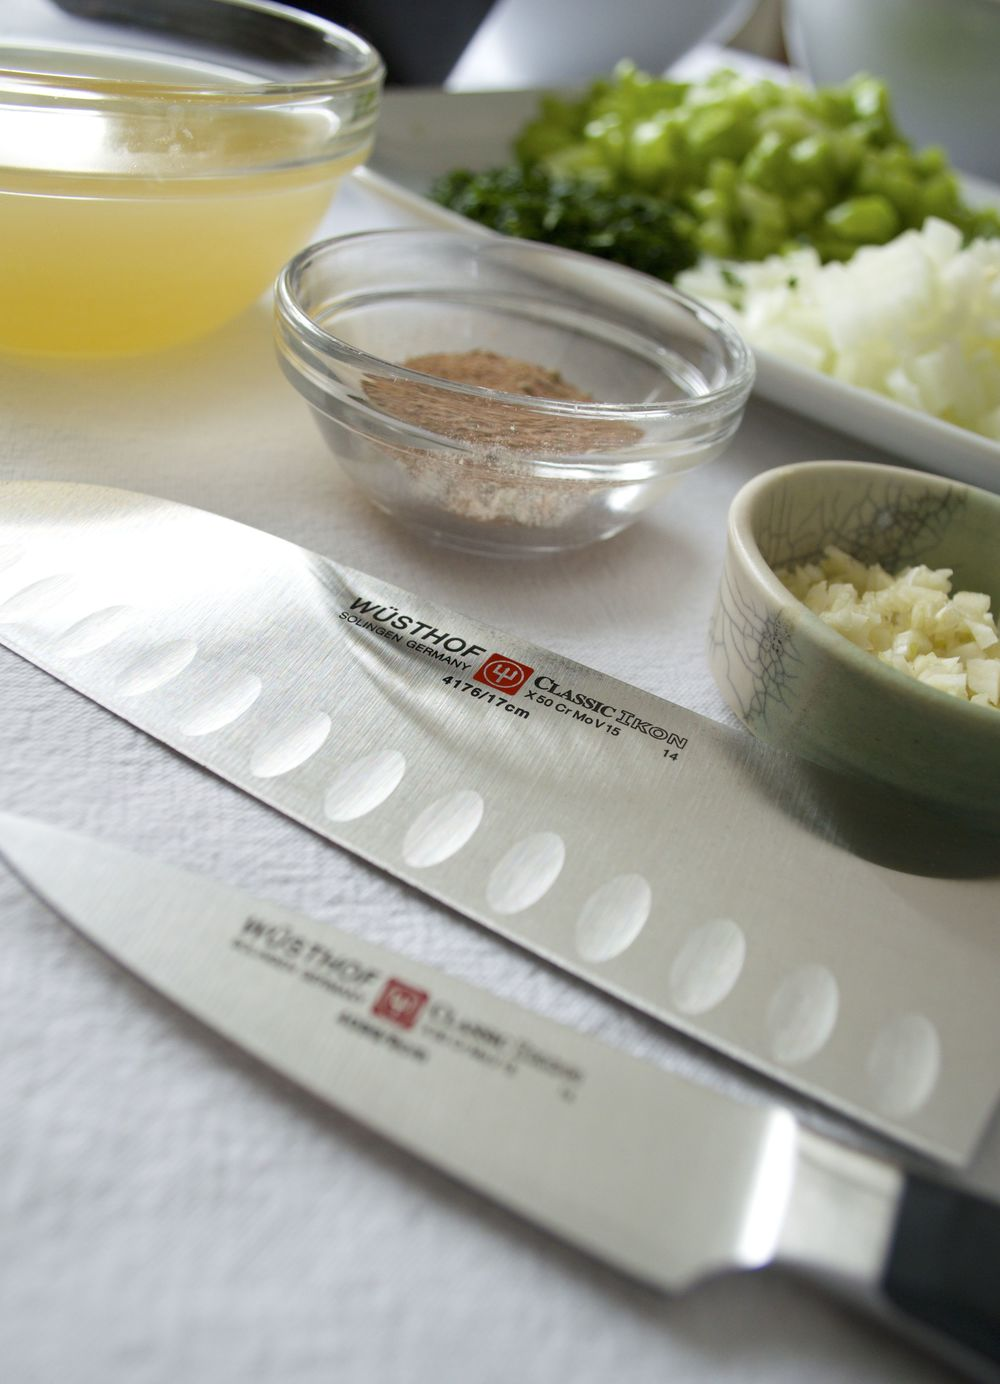 A WÜSTHOF Classic Ikon Santoku & Classic Ikon Paring Knife were used in the preparation of this meal.